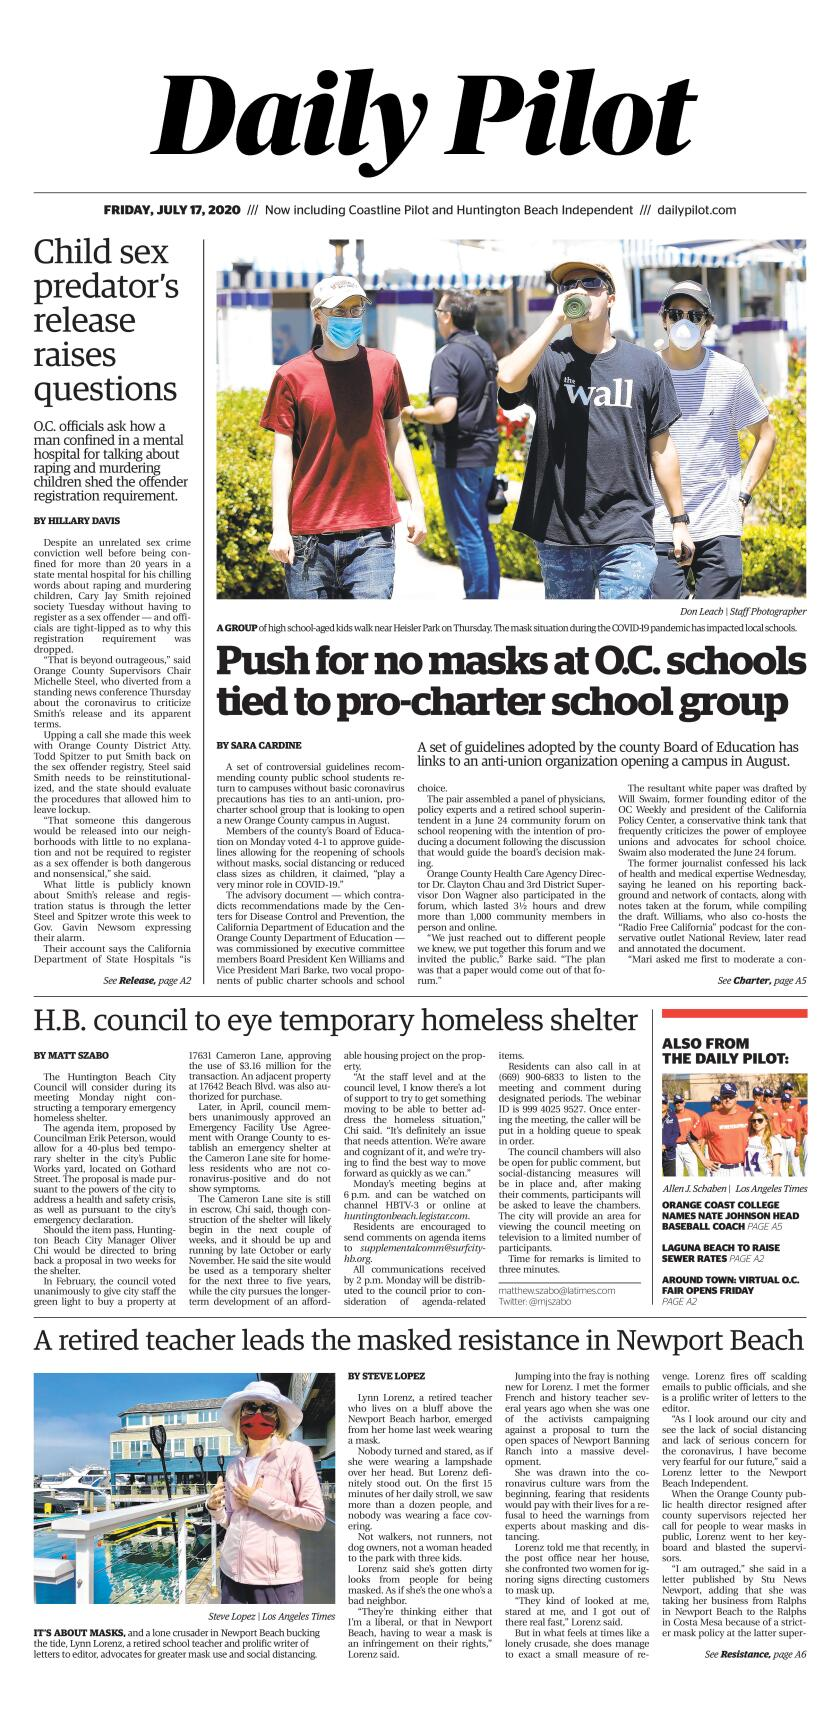 Friday's Daily Pilot cover.